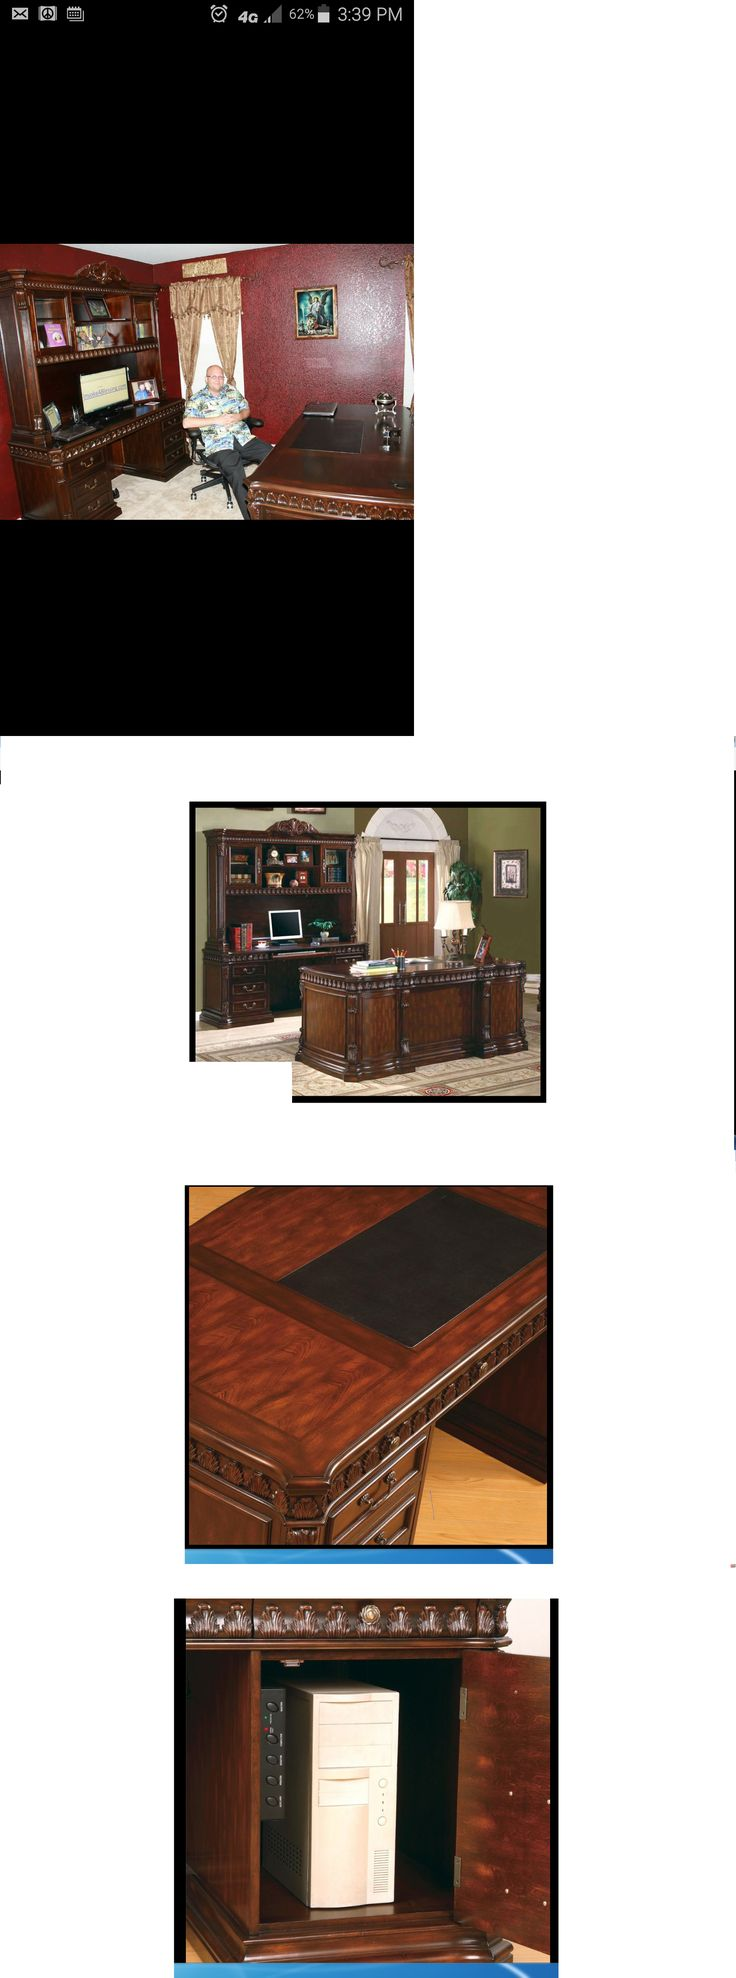 Office Furniture: Union Hill 3 Piece Executive Desk Set Wood Hutch Fine Office Furniture Credenza -> BUY IT NOW ONLY: $3800.0 on eBay!